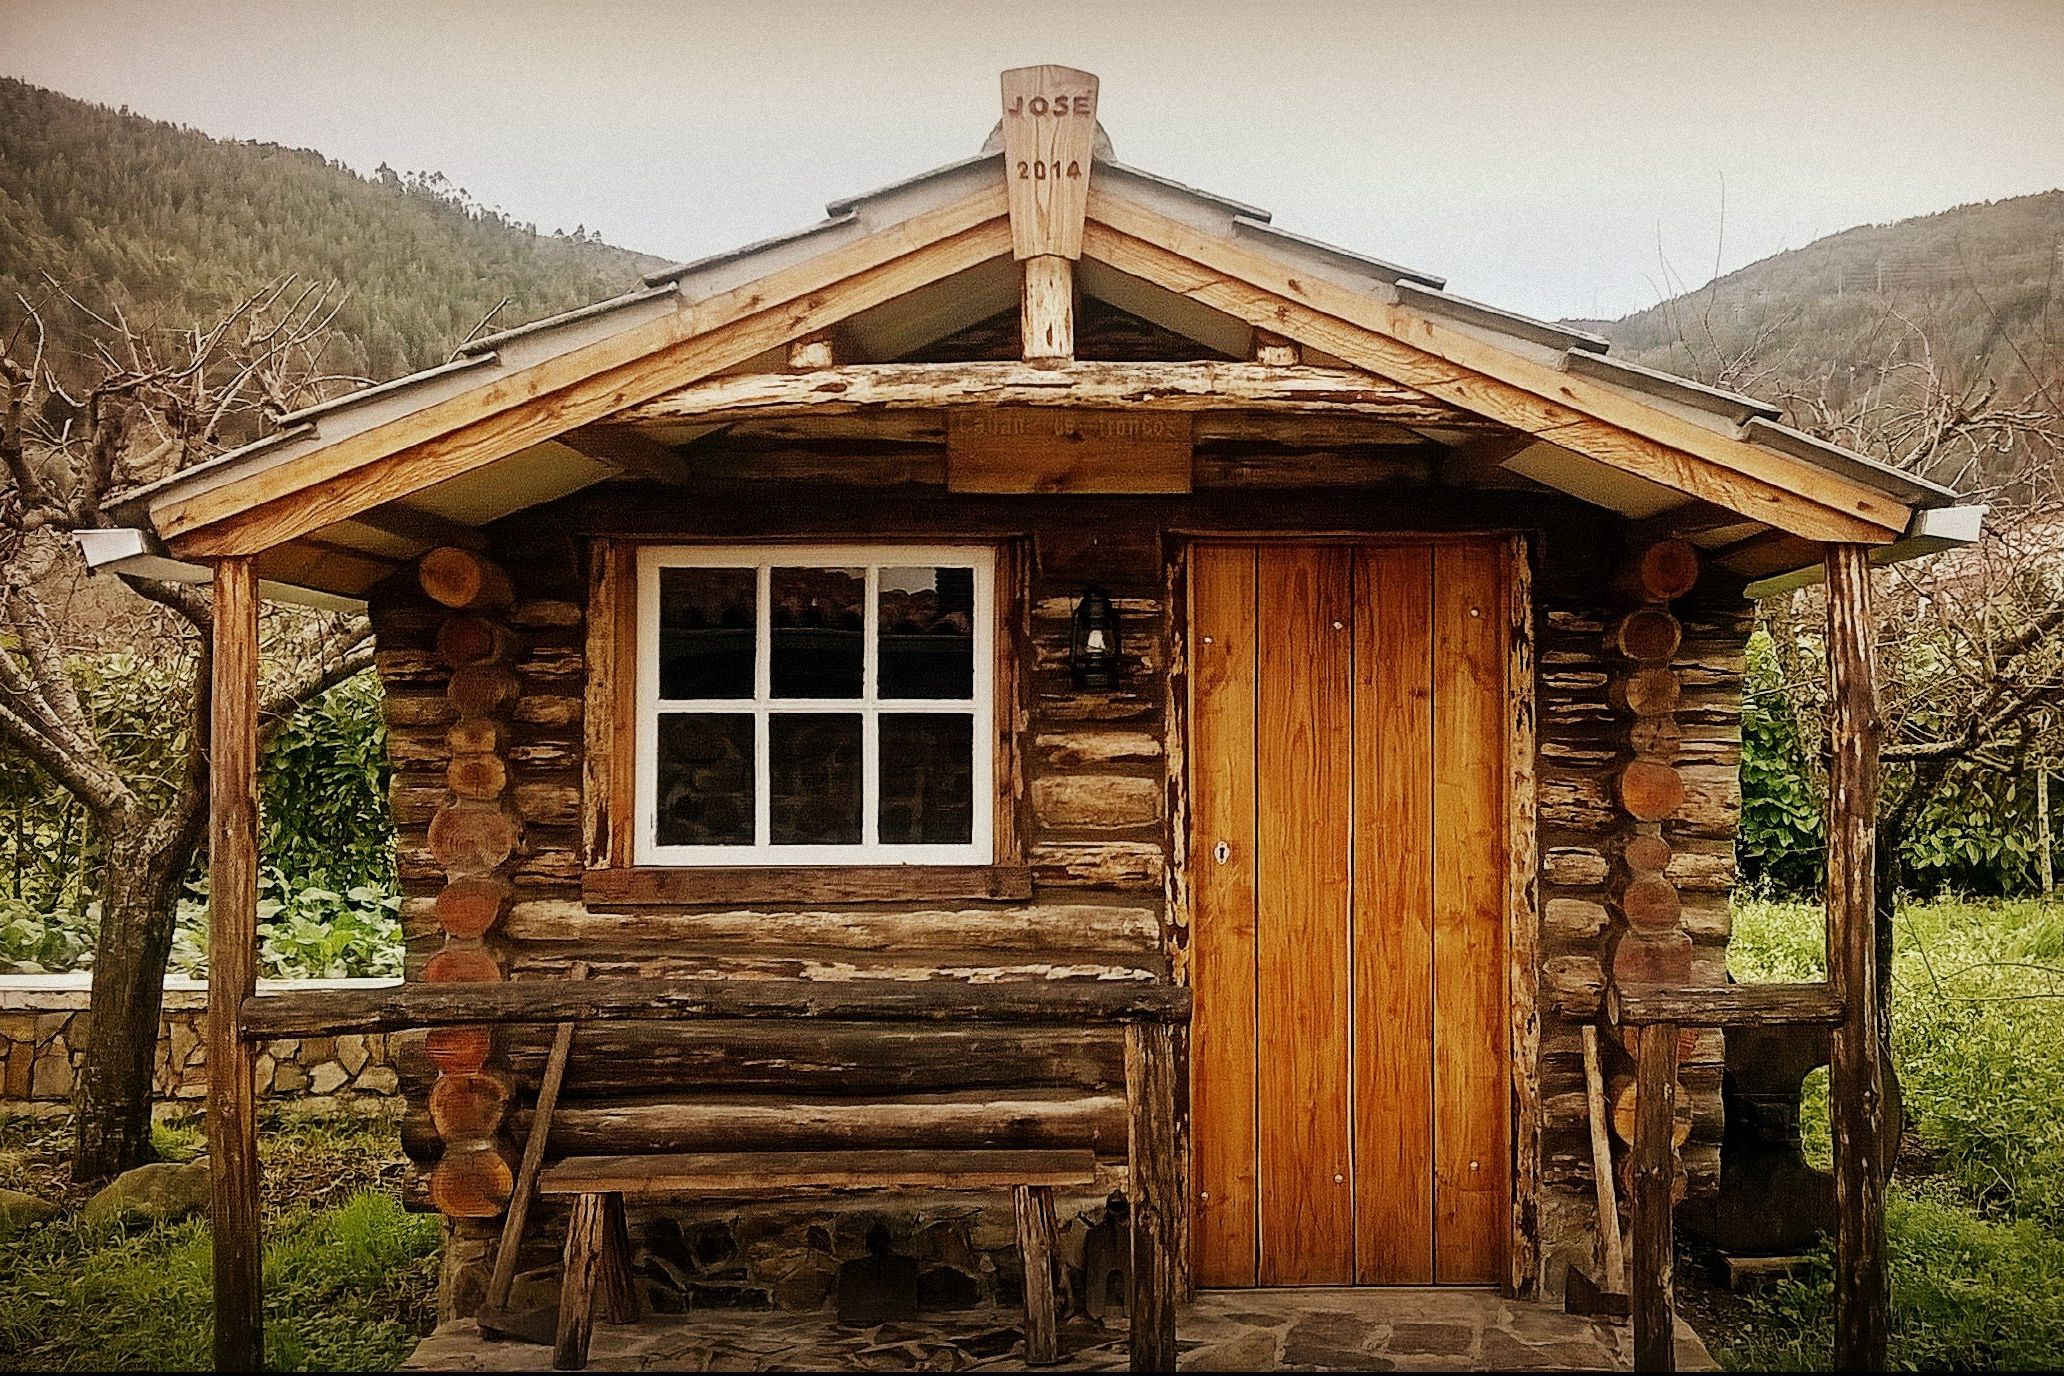 Astonishing 18 Small Cabins You Can Diy Or Buy For 300 And Up Home Interior And Landscaping Ologienasavecom